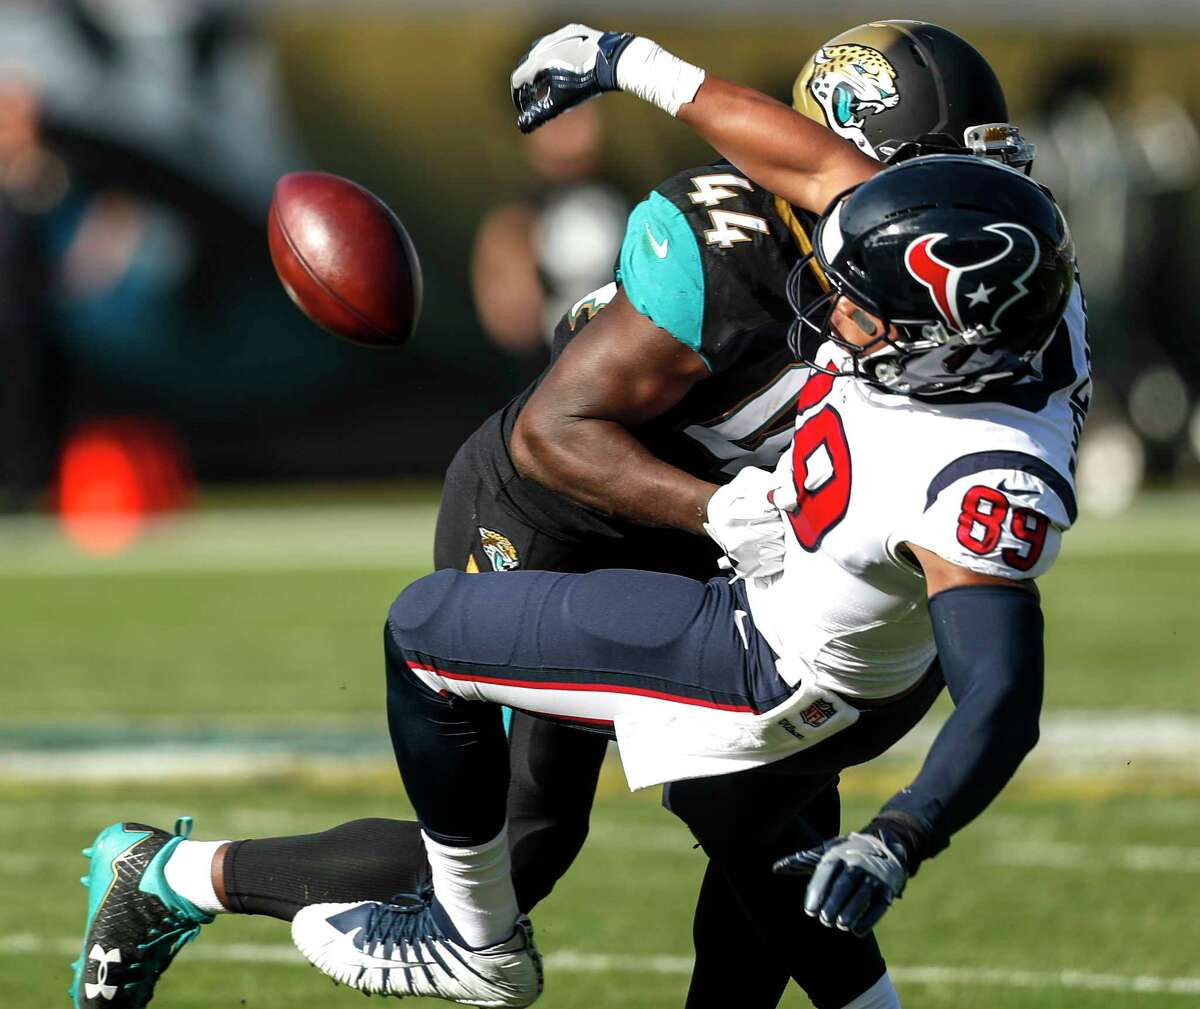 PHOTOS: How John McClain graded the Texans after their loss to the Jaguars Jaguars outside linebacker Myles Jack (44) breaks up a pass intended for Houston Texans tight end Stephen Anderson (89) at EverBank Field on Sunday, Dec. 17, 2017, in Jacksonville. Browse through the photos above to see how John McClain graded the Texans after their loss to the Jaguars on Sunday.